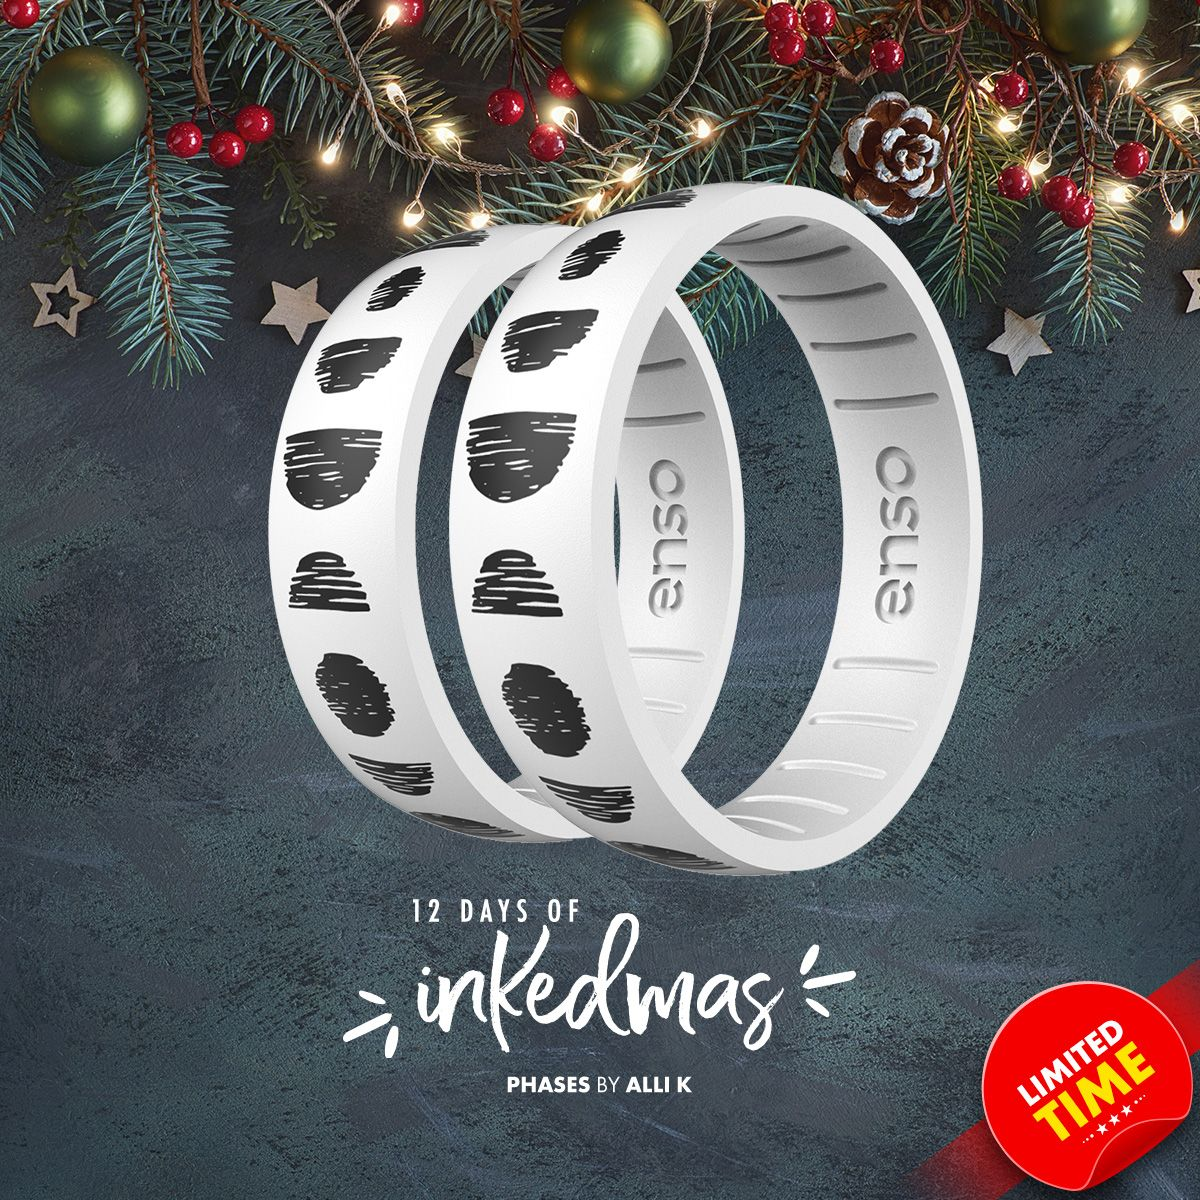 On the ninth day of #INKEDmas Enso Rings gave to me ... a Phases ring by @allikdesign.   https://t.co/2Ph90Frrf1 https://t.co/aEZiFSOZBh